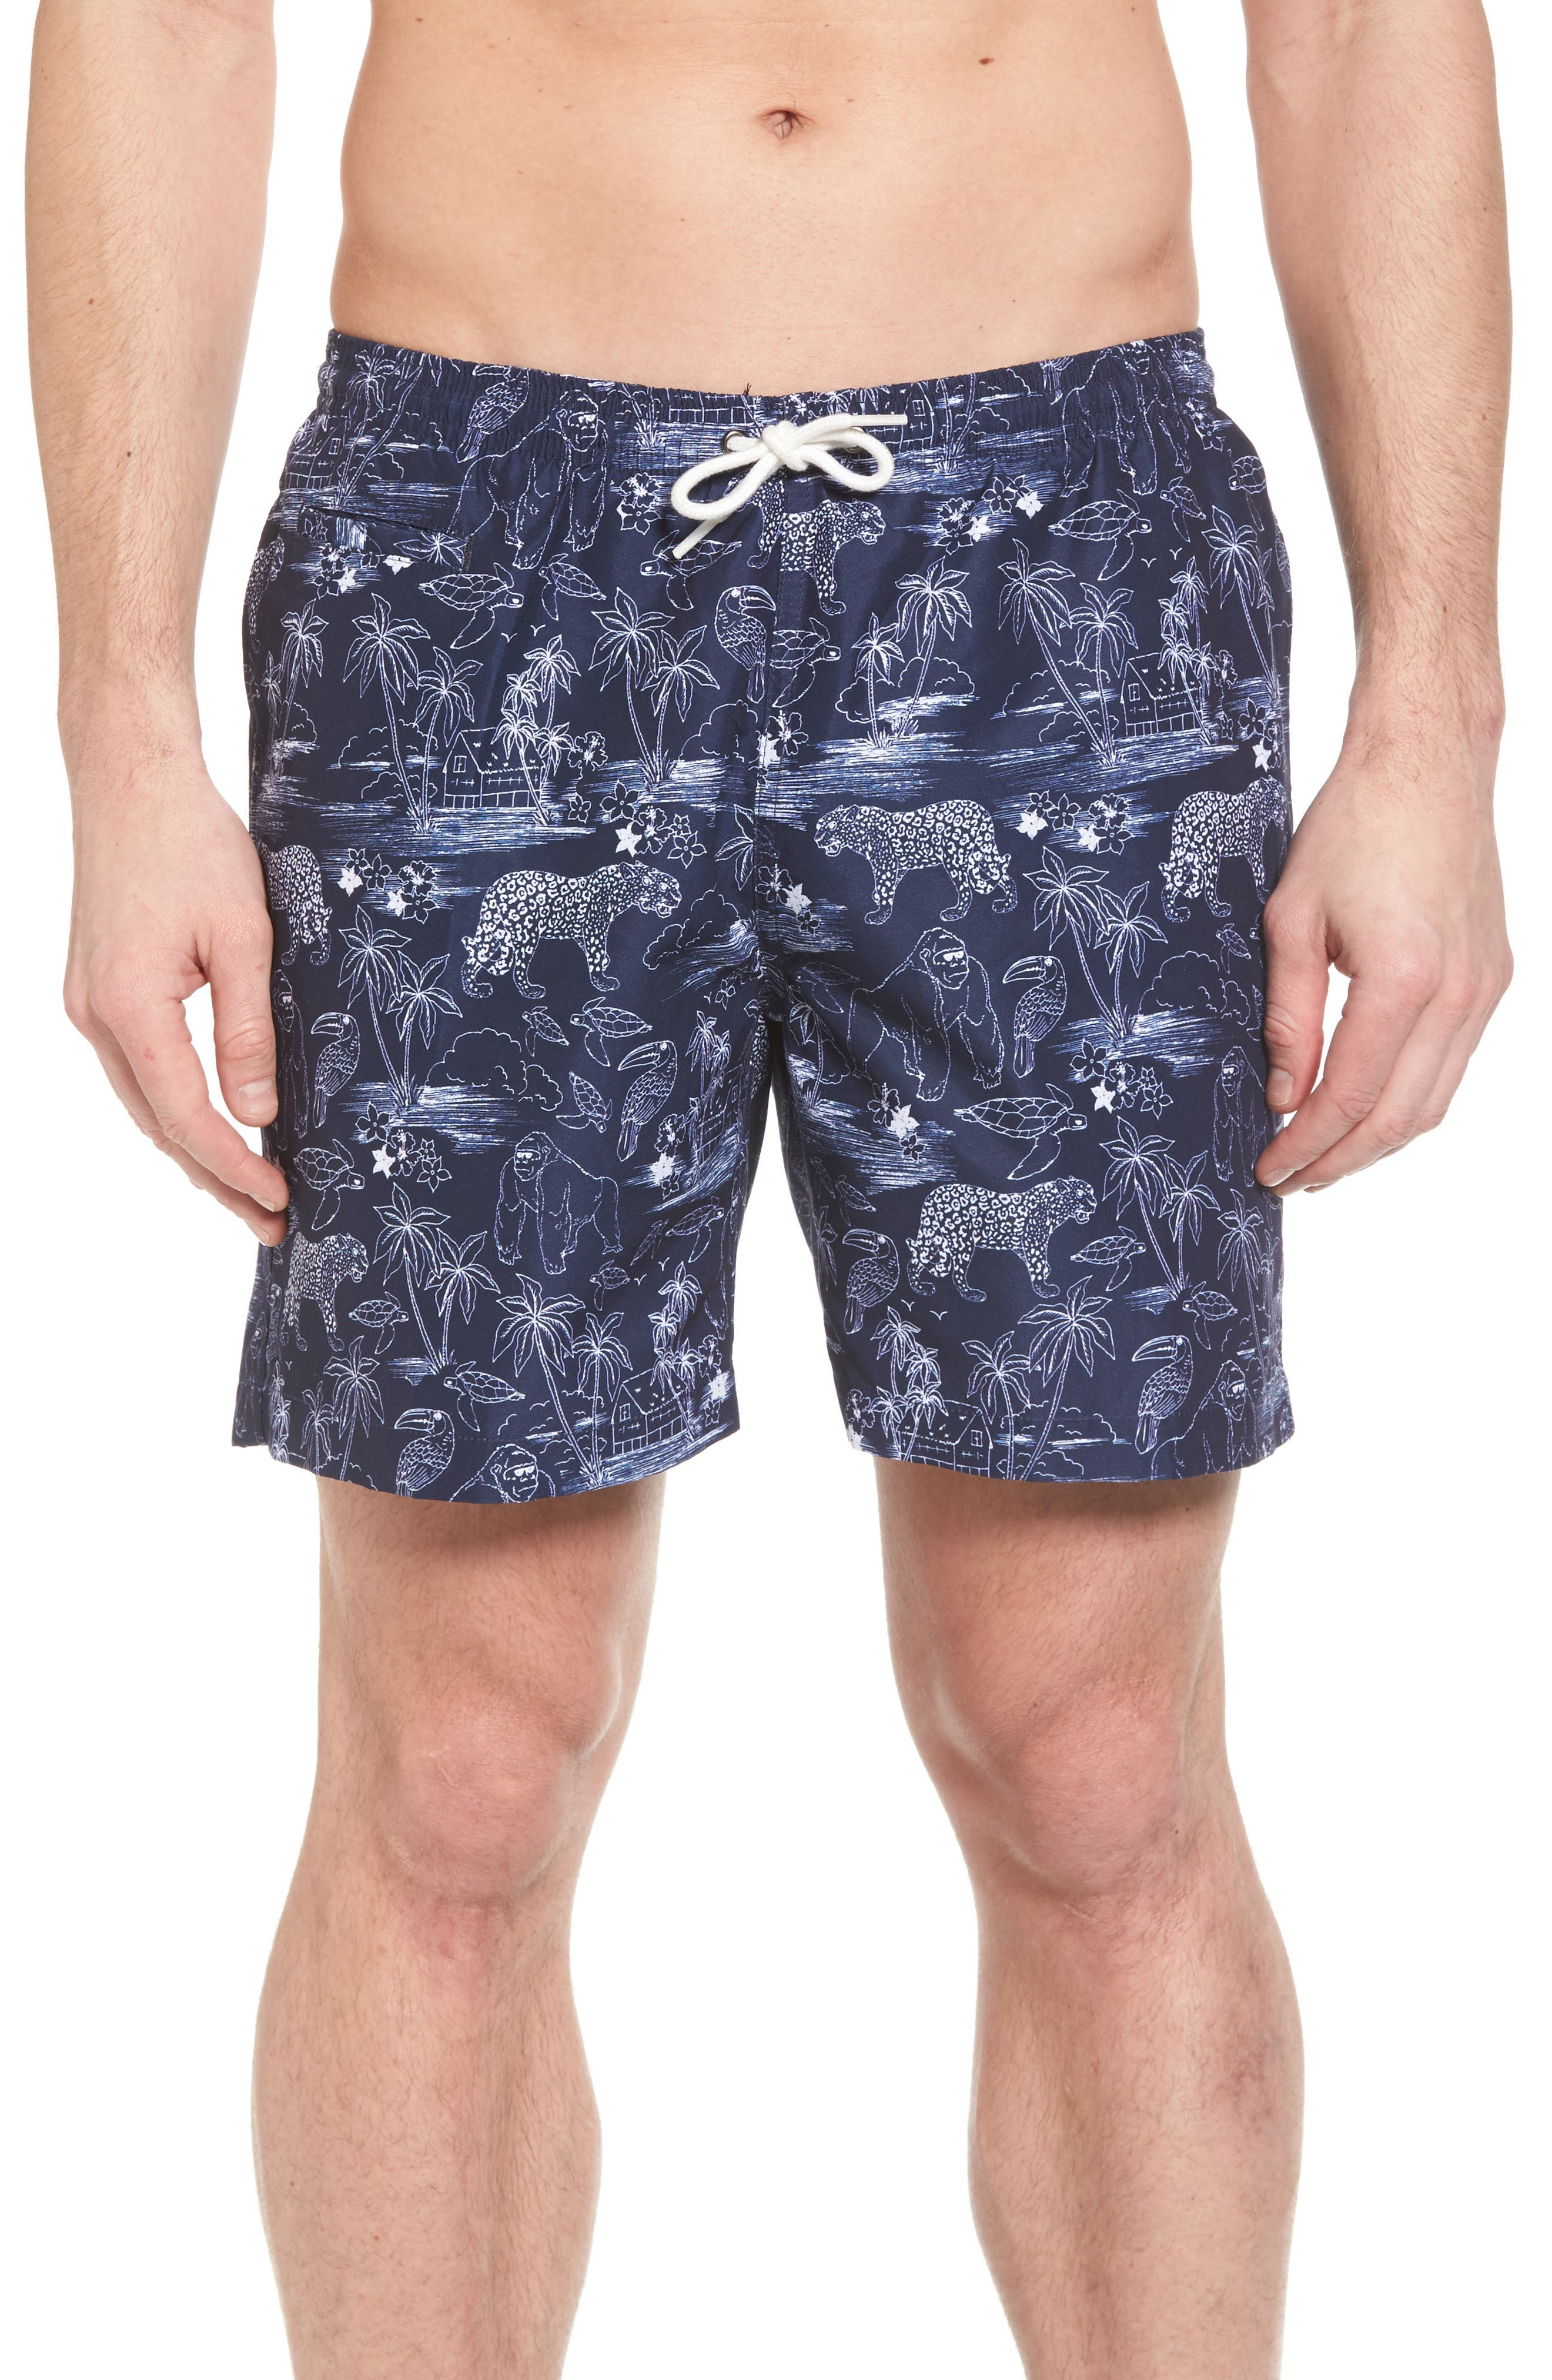 Trunks Surf & Co. San O Jungle Safari Swim Trunks,                             Main thumbnail 1, color,                             100